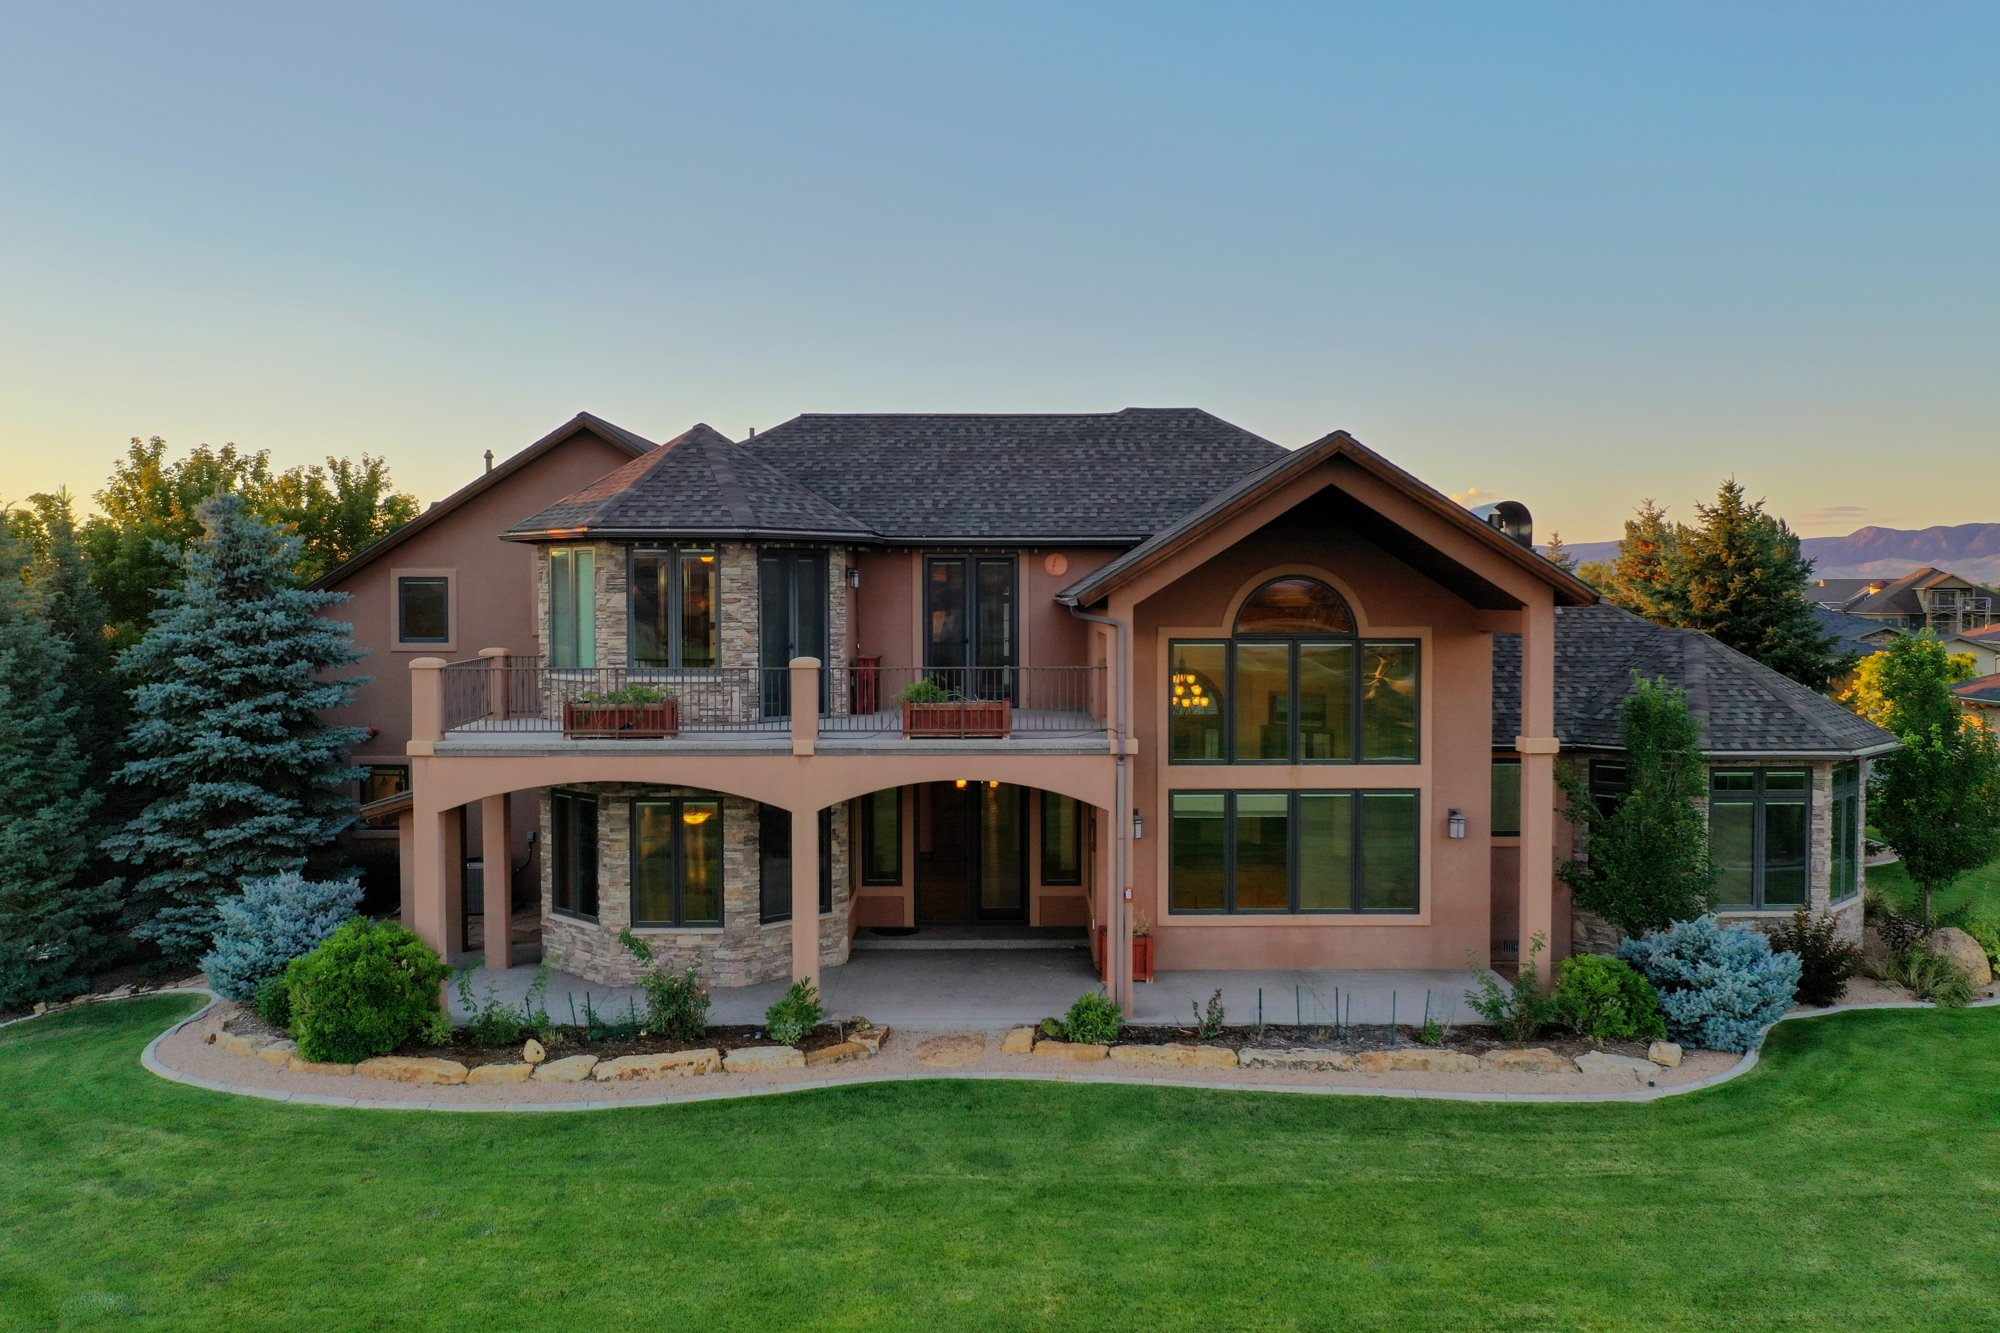 Aerial View Rear of Home - 924 Courthouse Peak Lane Montrose, CO 81403 - Atha Team Golf Luxury Real Estate